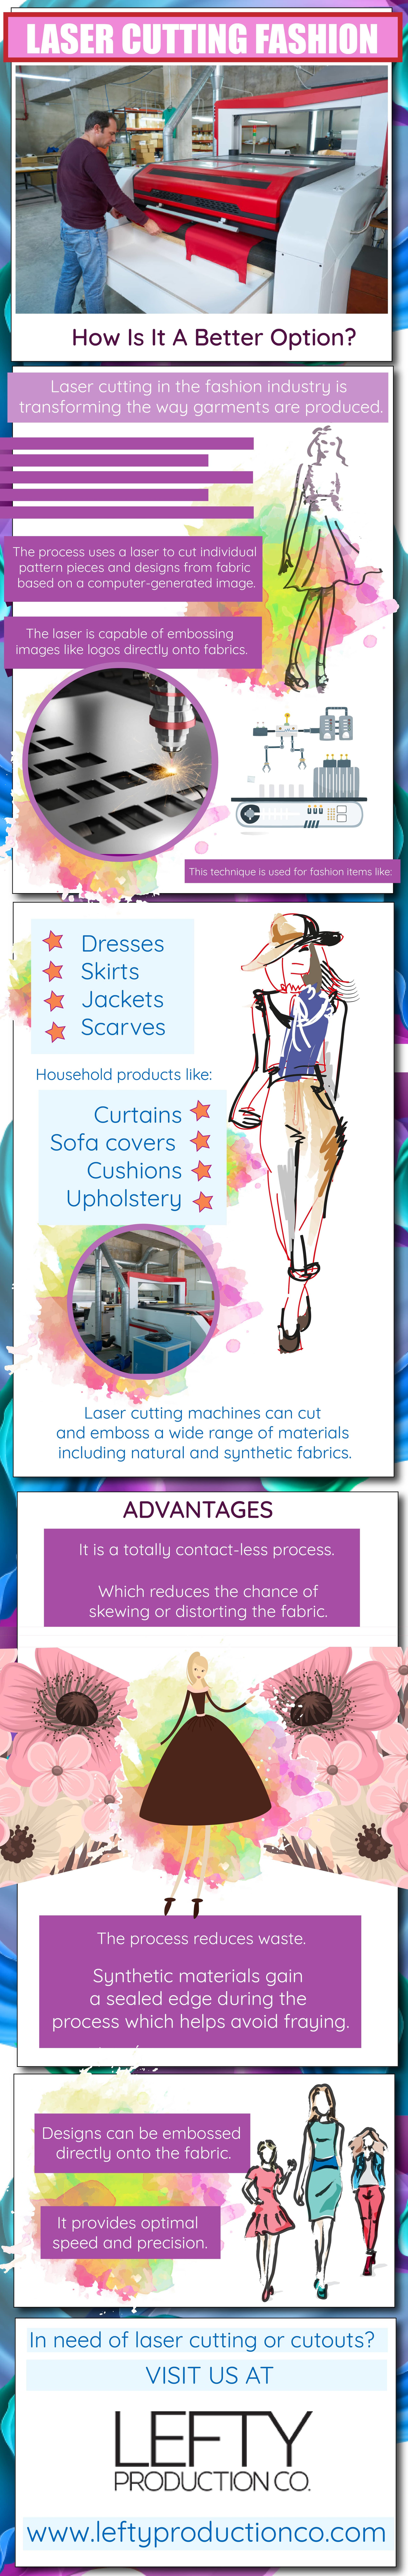 Laser-Cutting-Fashion-How-Is-It-A-Better-Option?.jpg